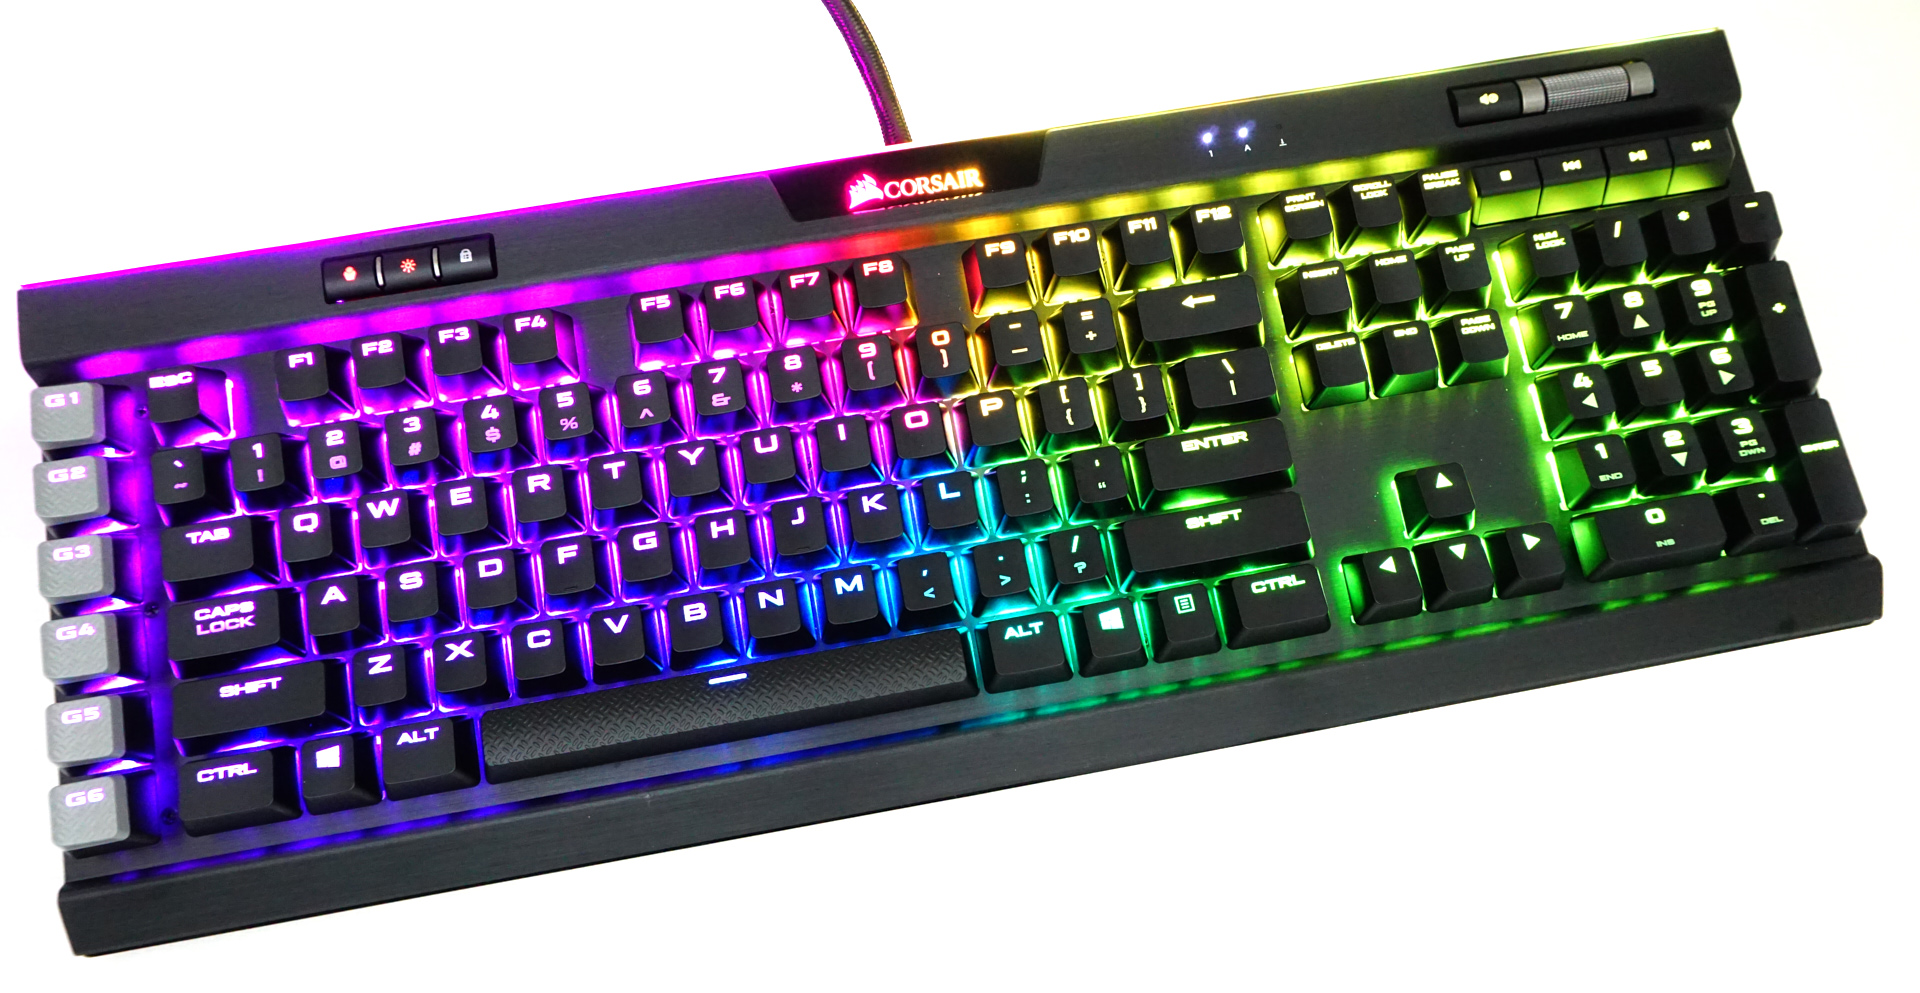 990263f351e For advanced gamers and enthusiasts, our recommendation for this year  remains the Corsair K95 RGB Platinum. Even though we have tested several  products ...